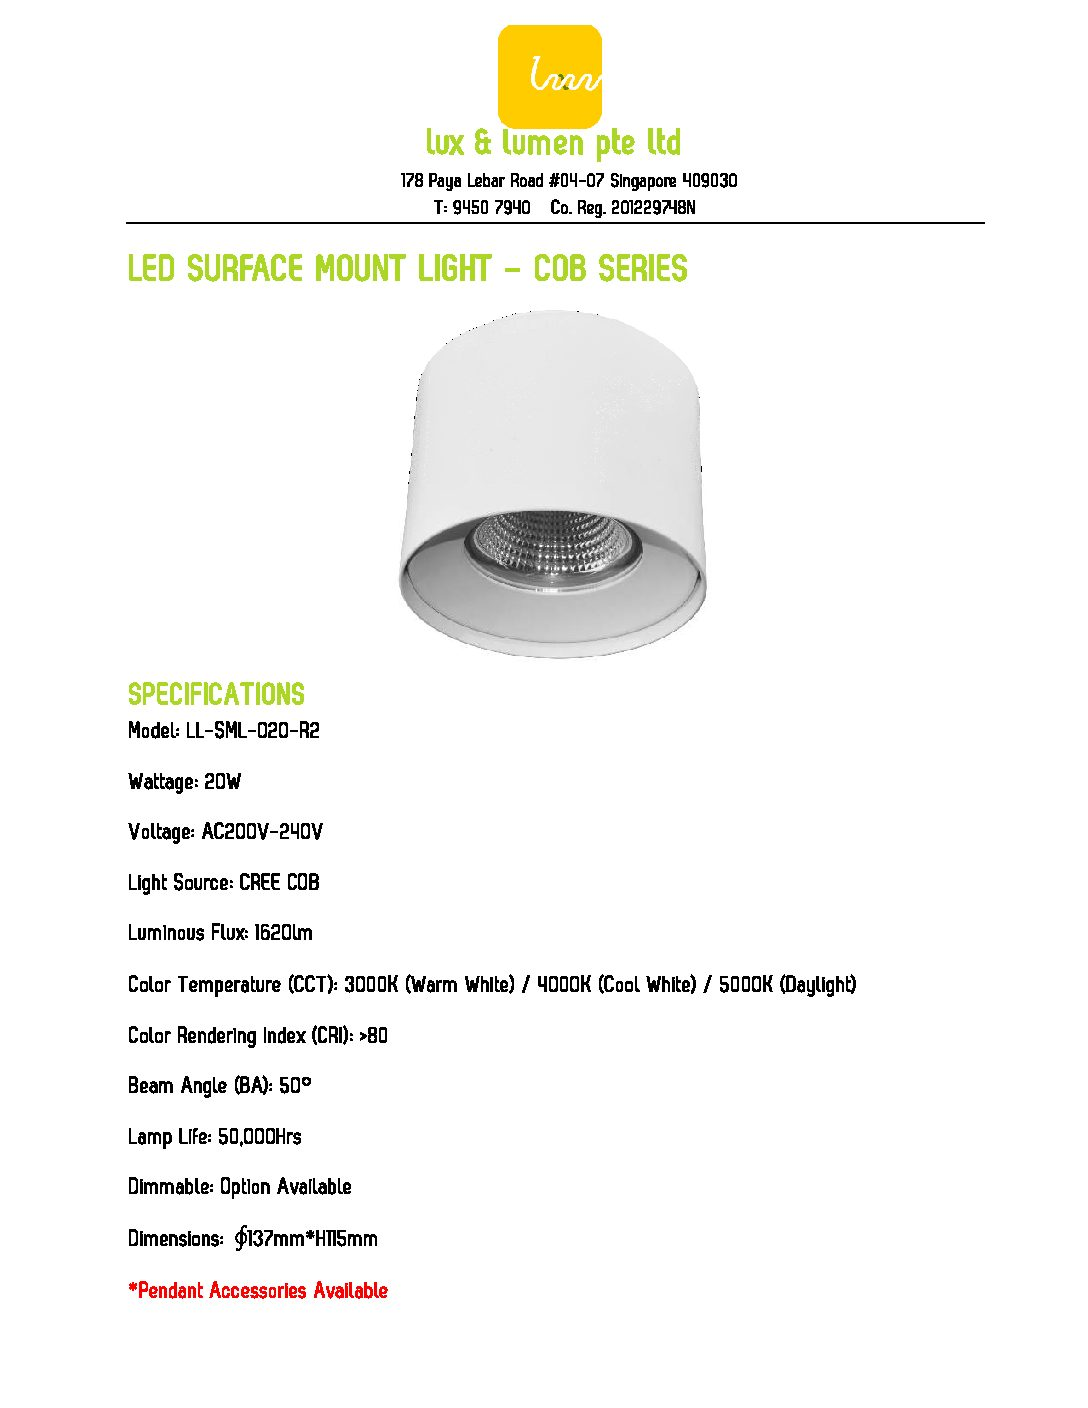 LED Surface Mount Light COB Series R020